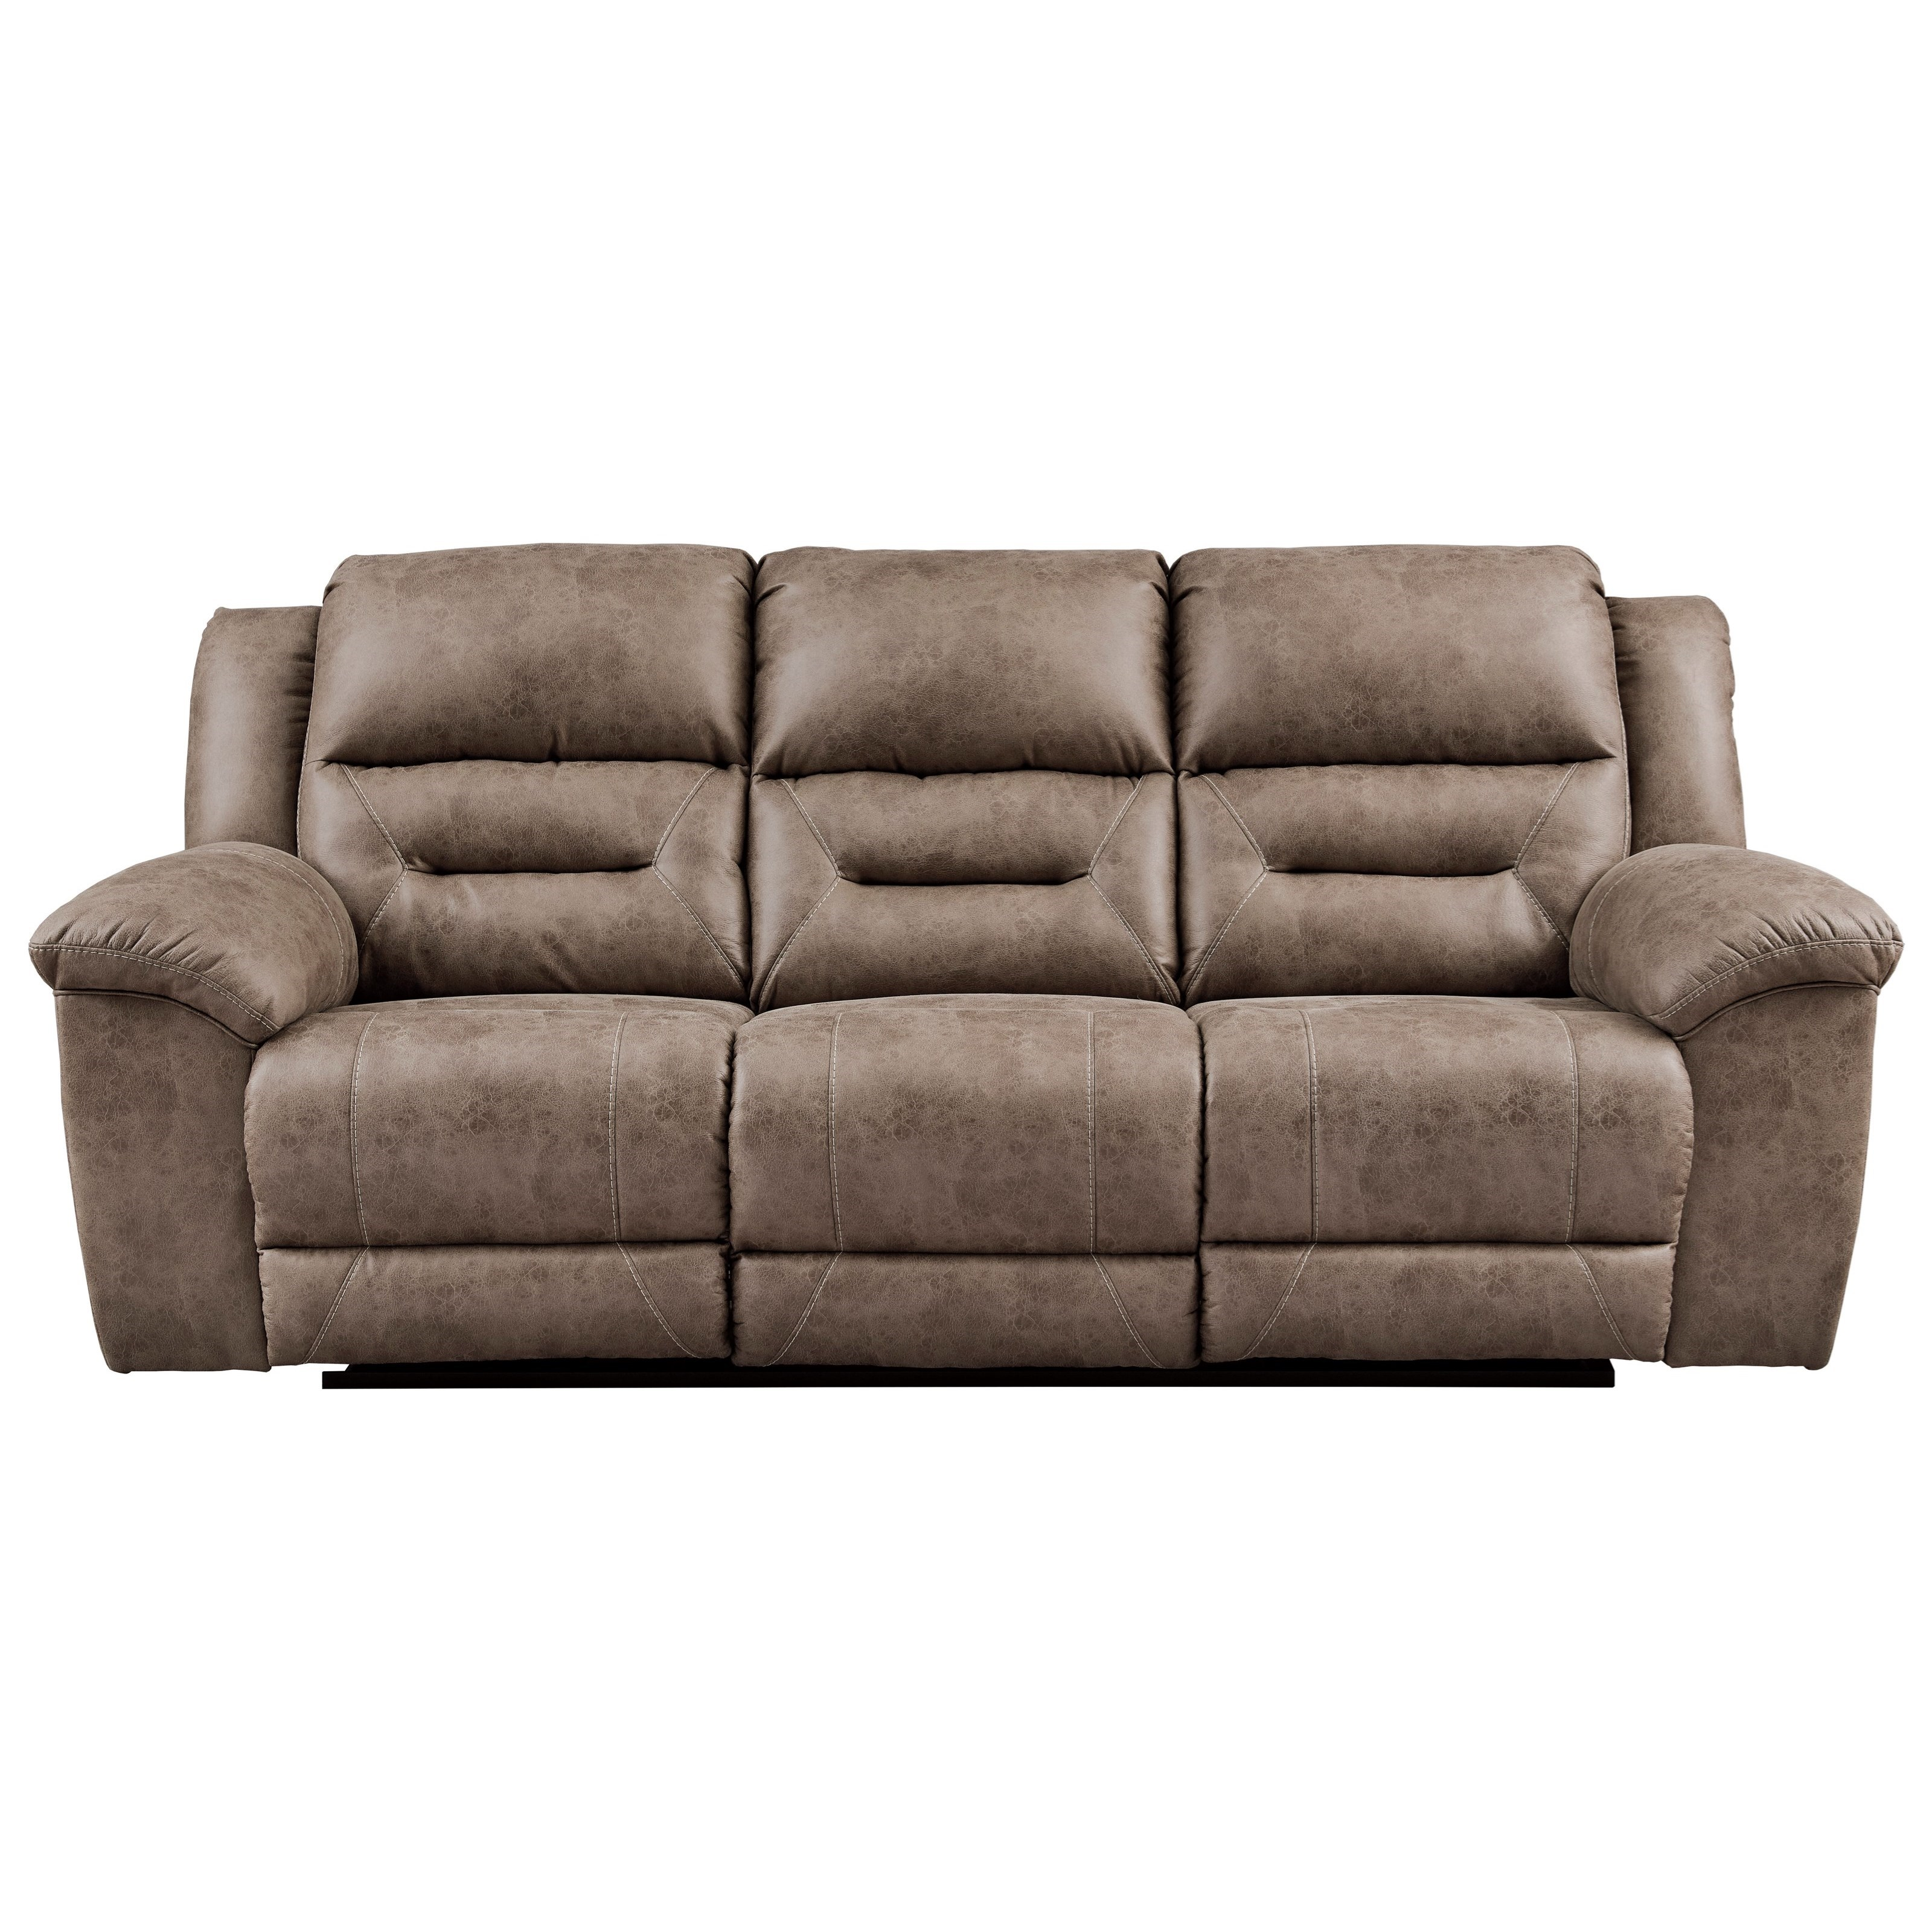 Stoneland Reclining Power Sofa by Signature Design by Ashley at Northeast Factory Direct